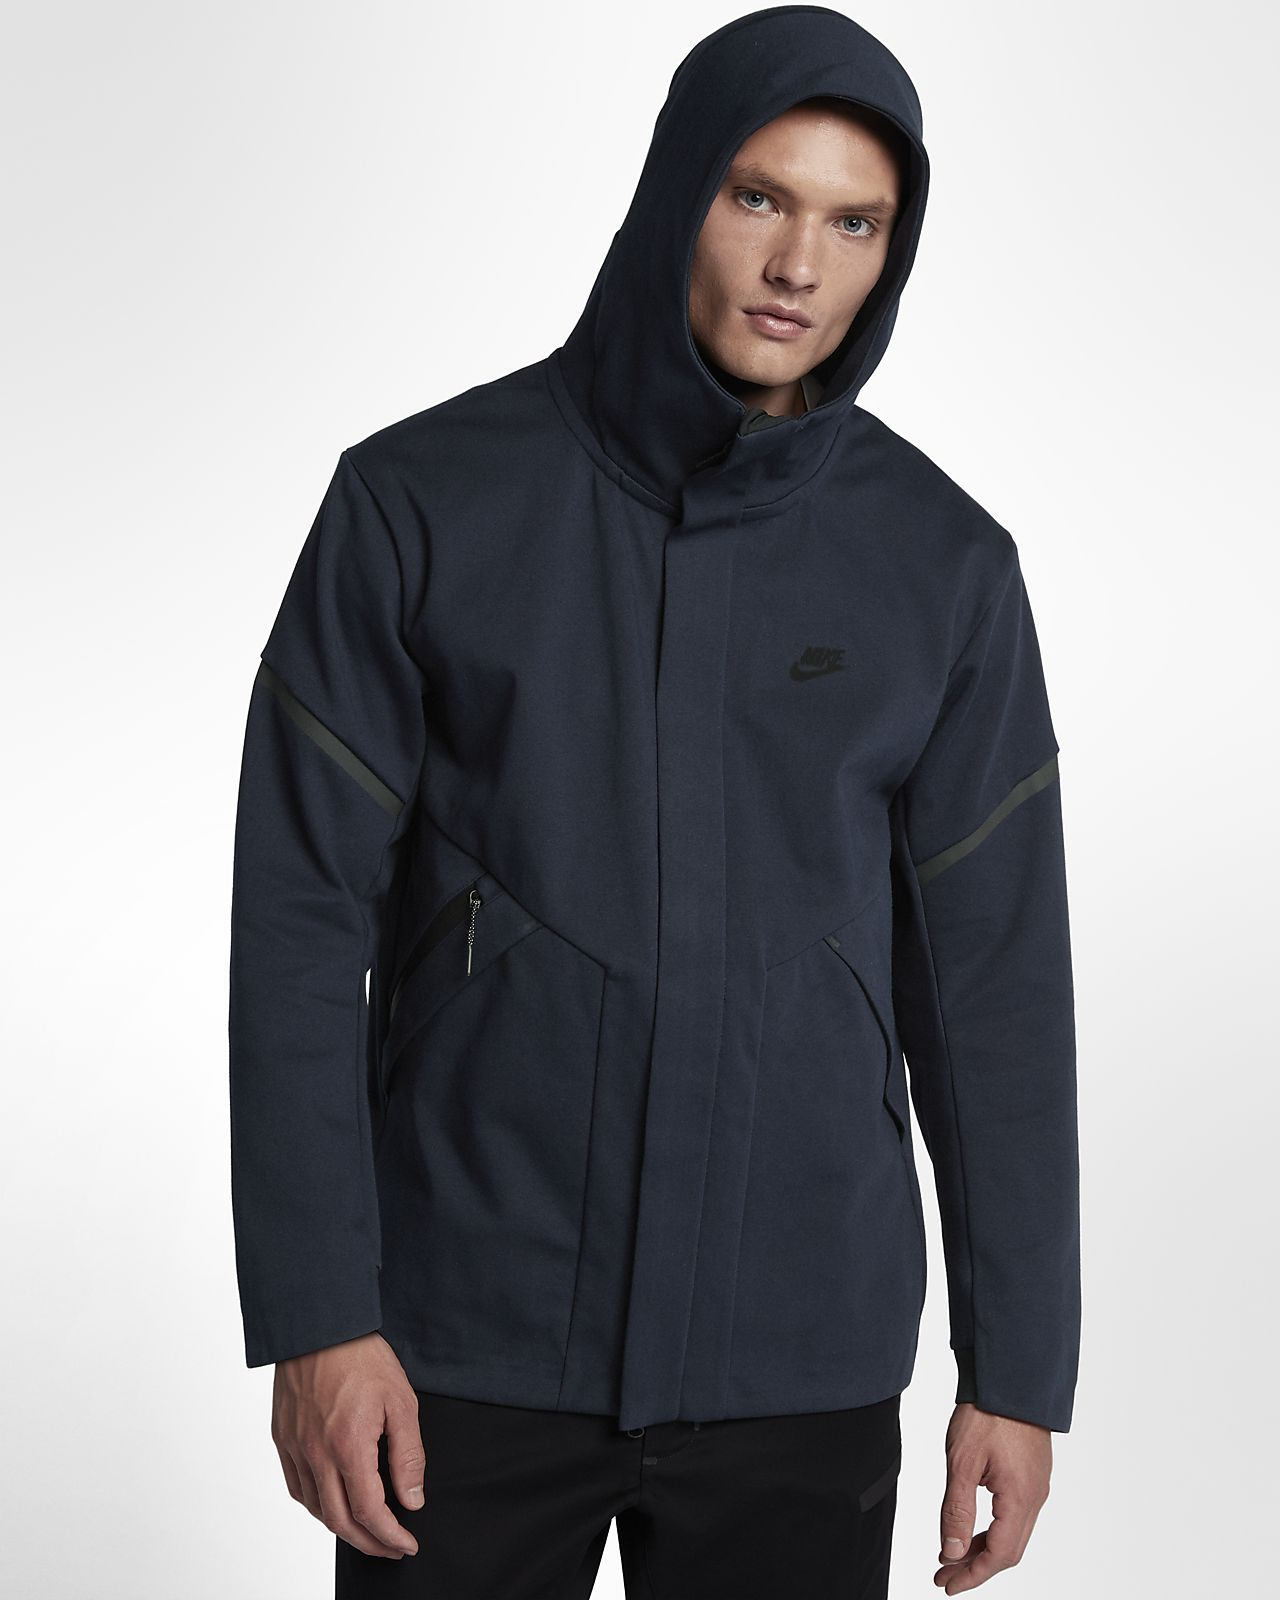 Nike Sportswear Tech Fleece Repel Windrunner Men's Jacket